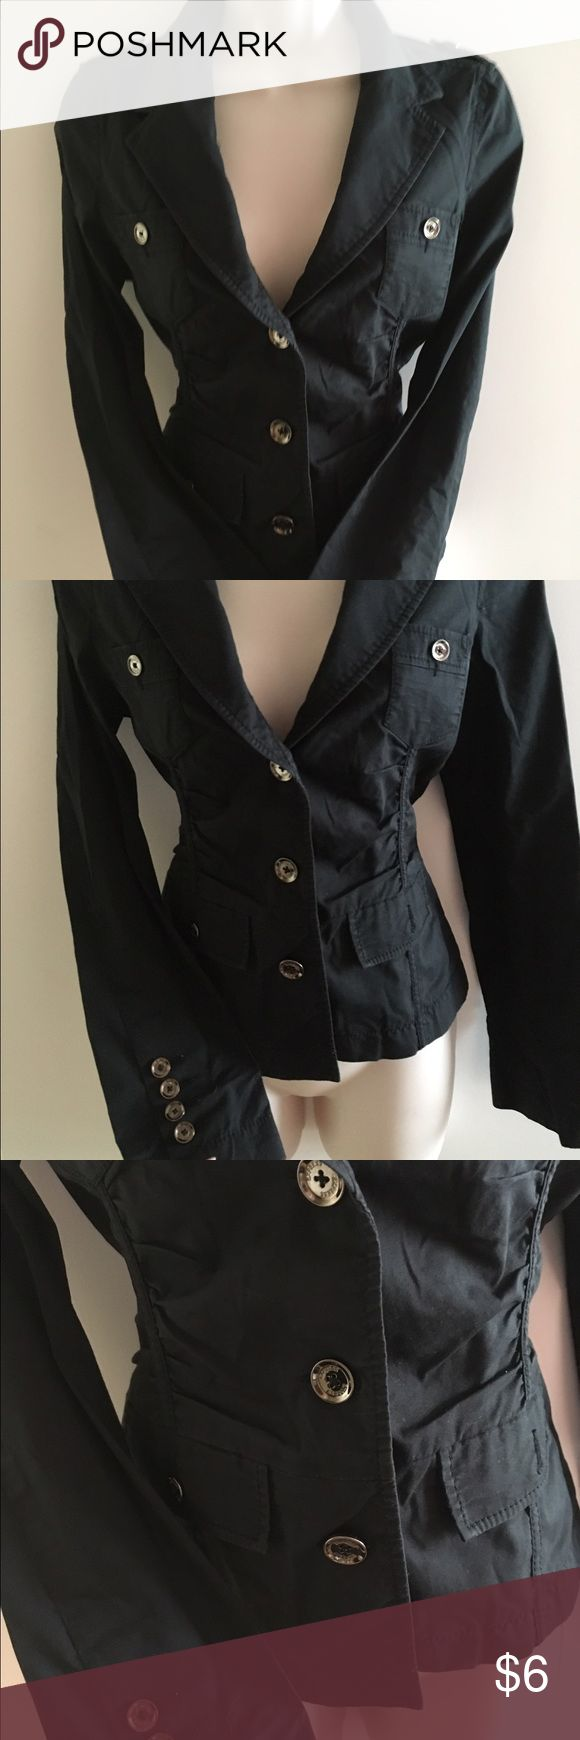 Dressy jacket Nice for work w pants skirt or jeans. Dress it up or down . Good condition. Express Jackets & Coats Blazers